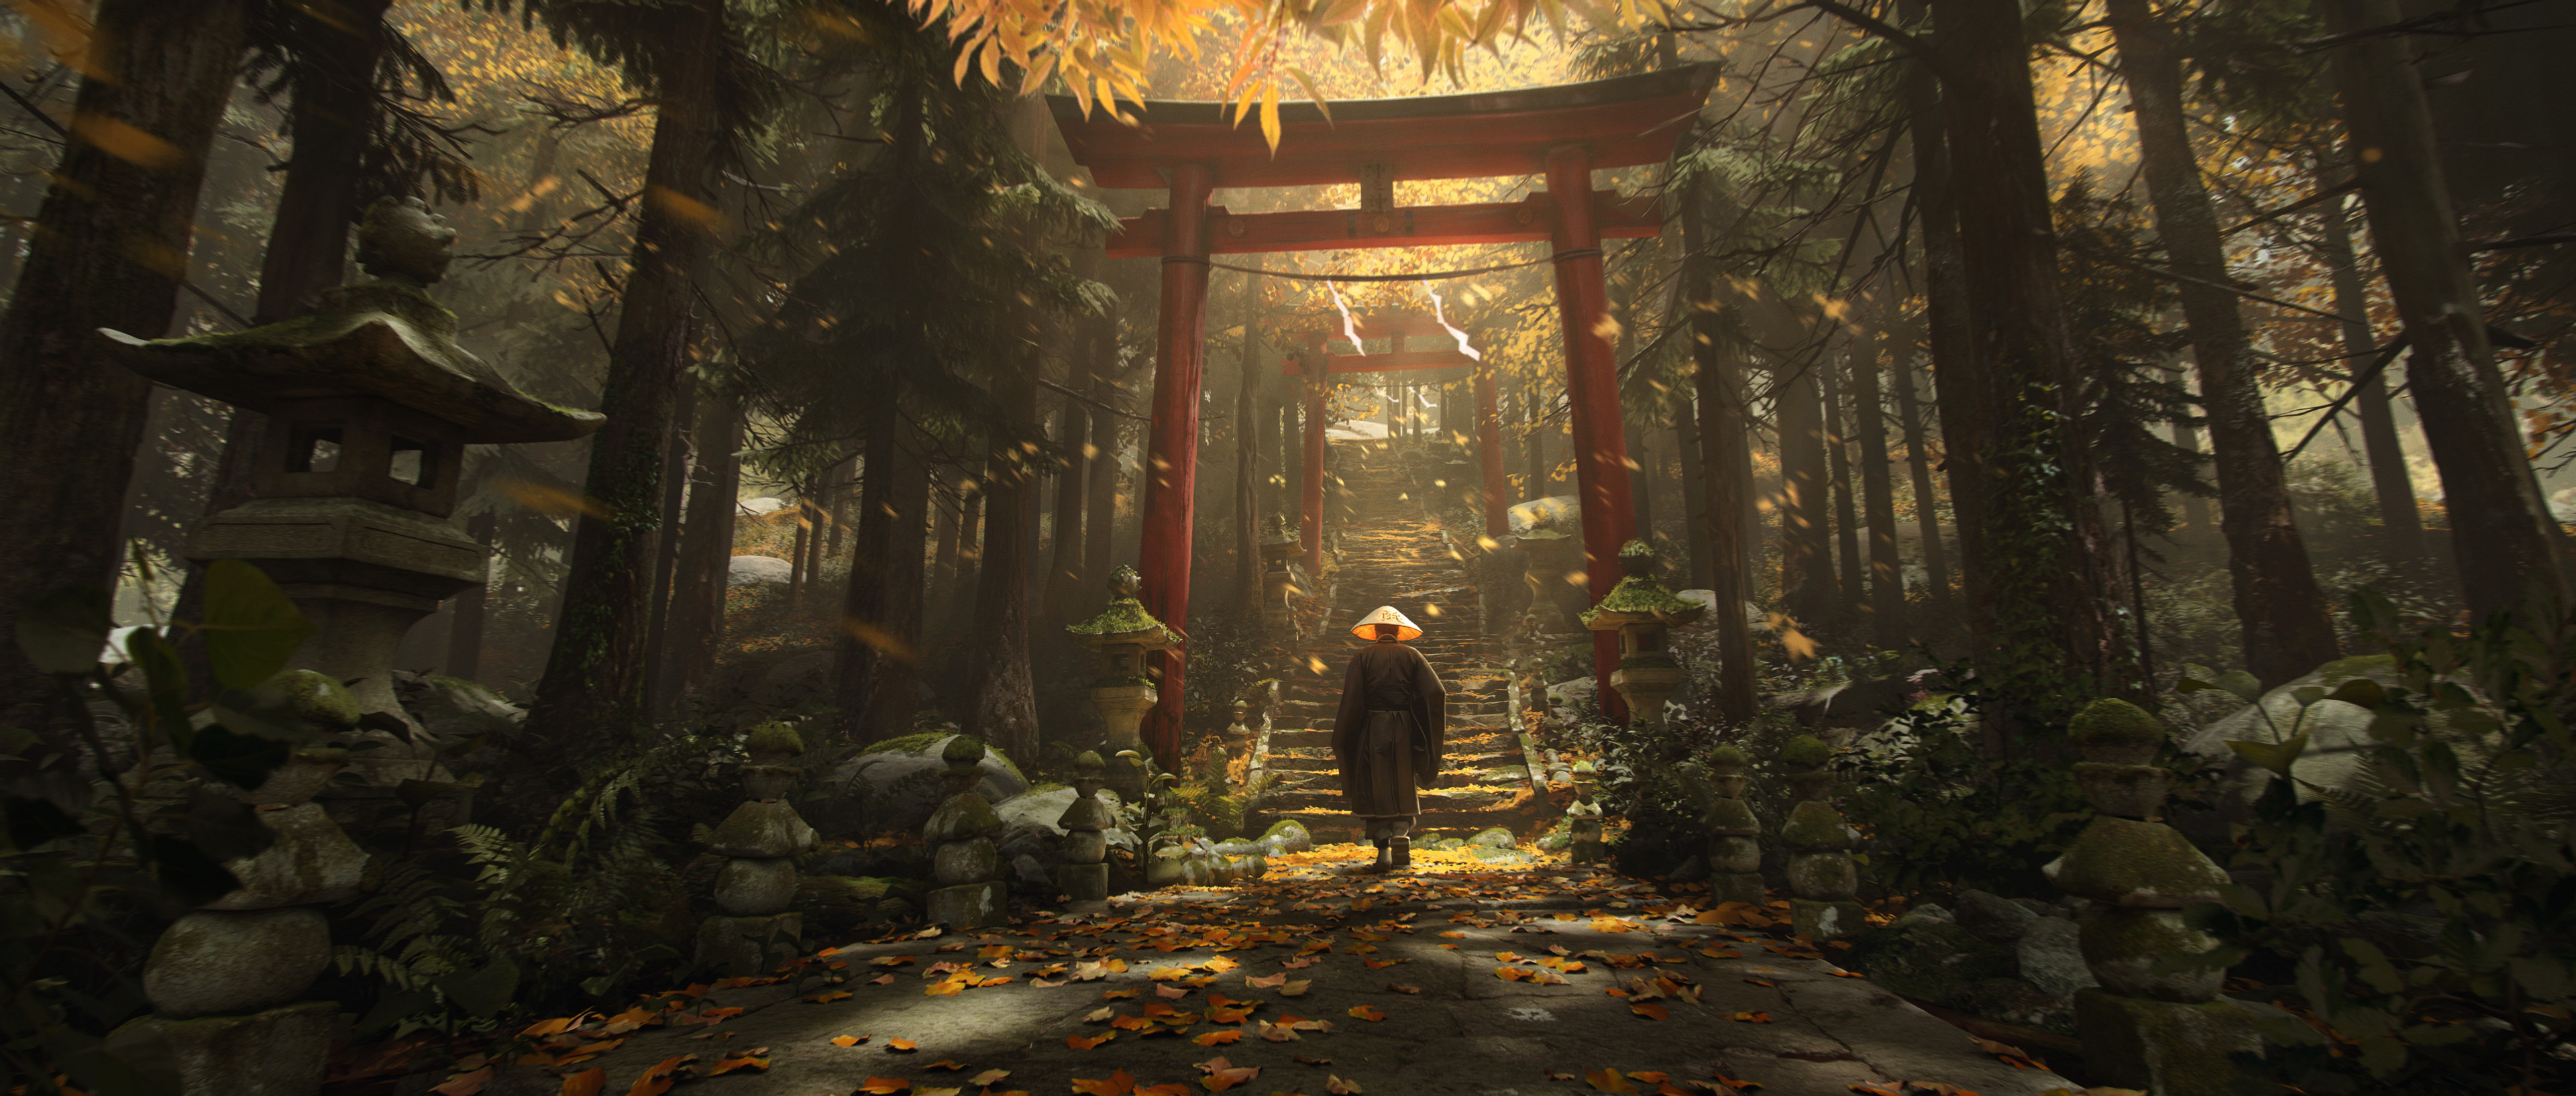 General 3840x1634 Florent Lebrun torii digital art forest Asian architecture stairs Japan Asia traditional clothing